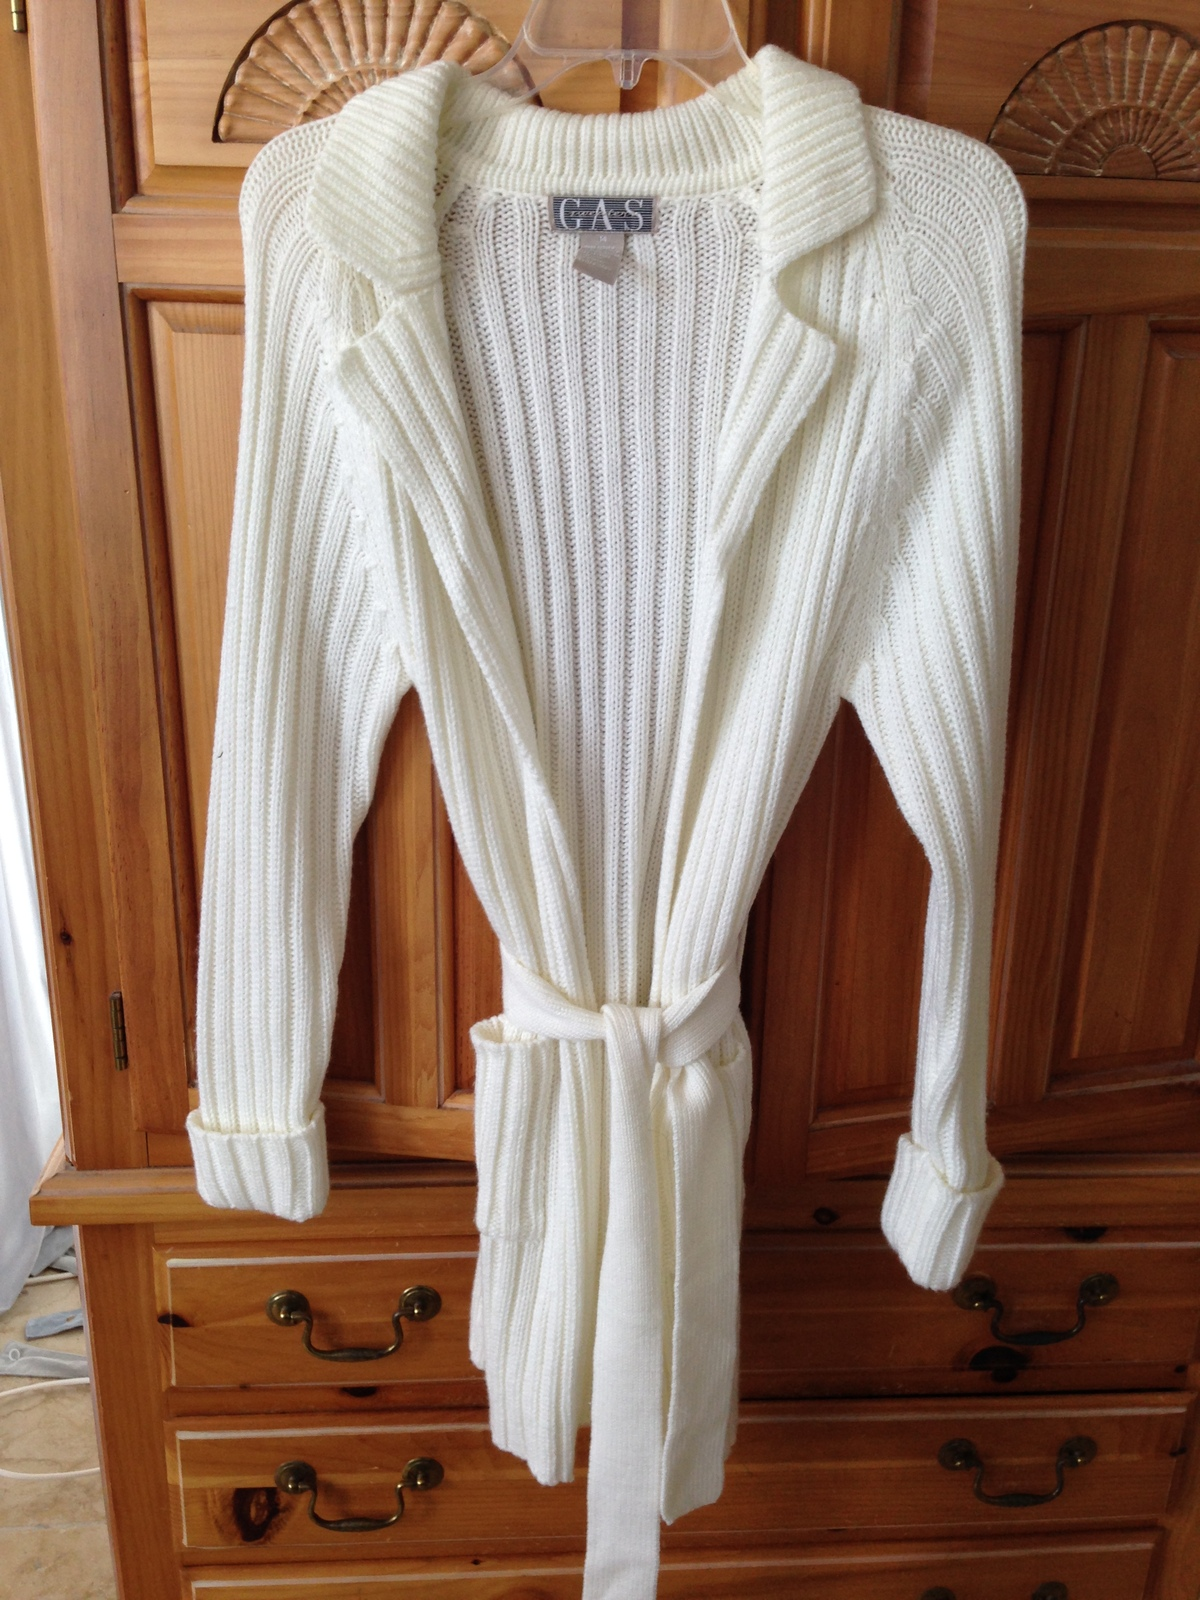 Women's Cream Belted Long Sweater Size Medium By GAS Sweaters - $39.99